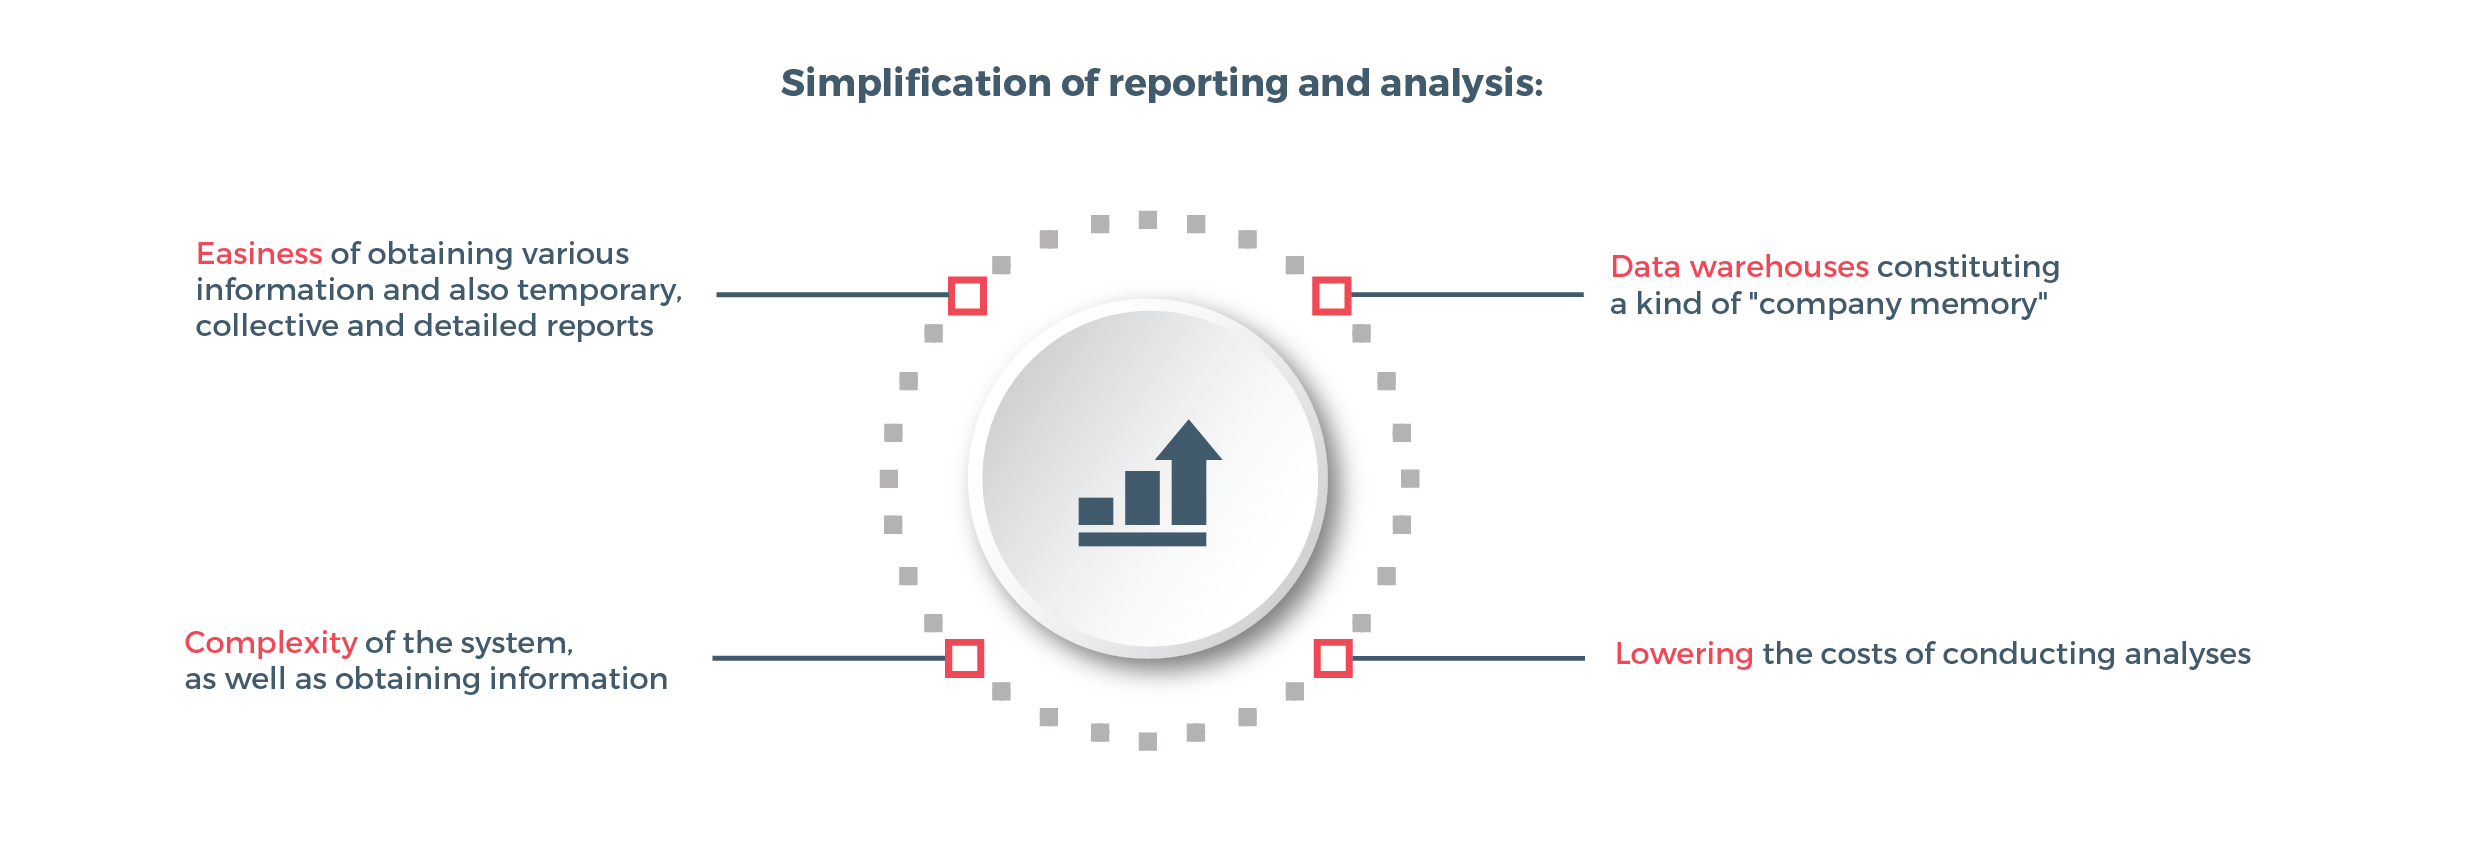 InfoConsulting-BI-simplification of reporting